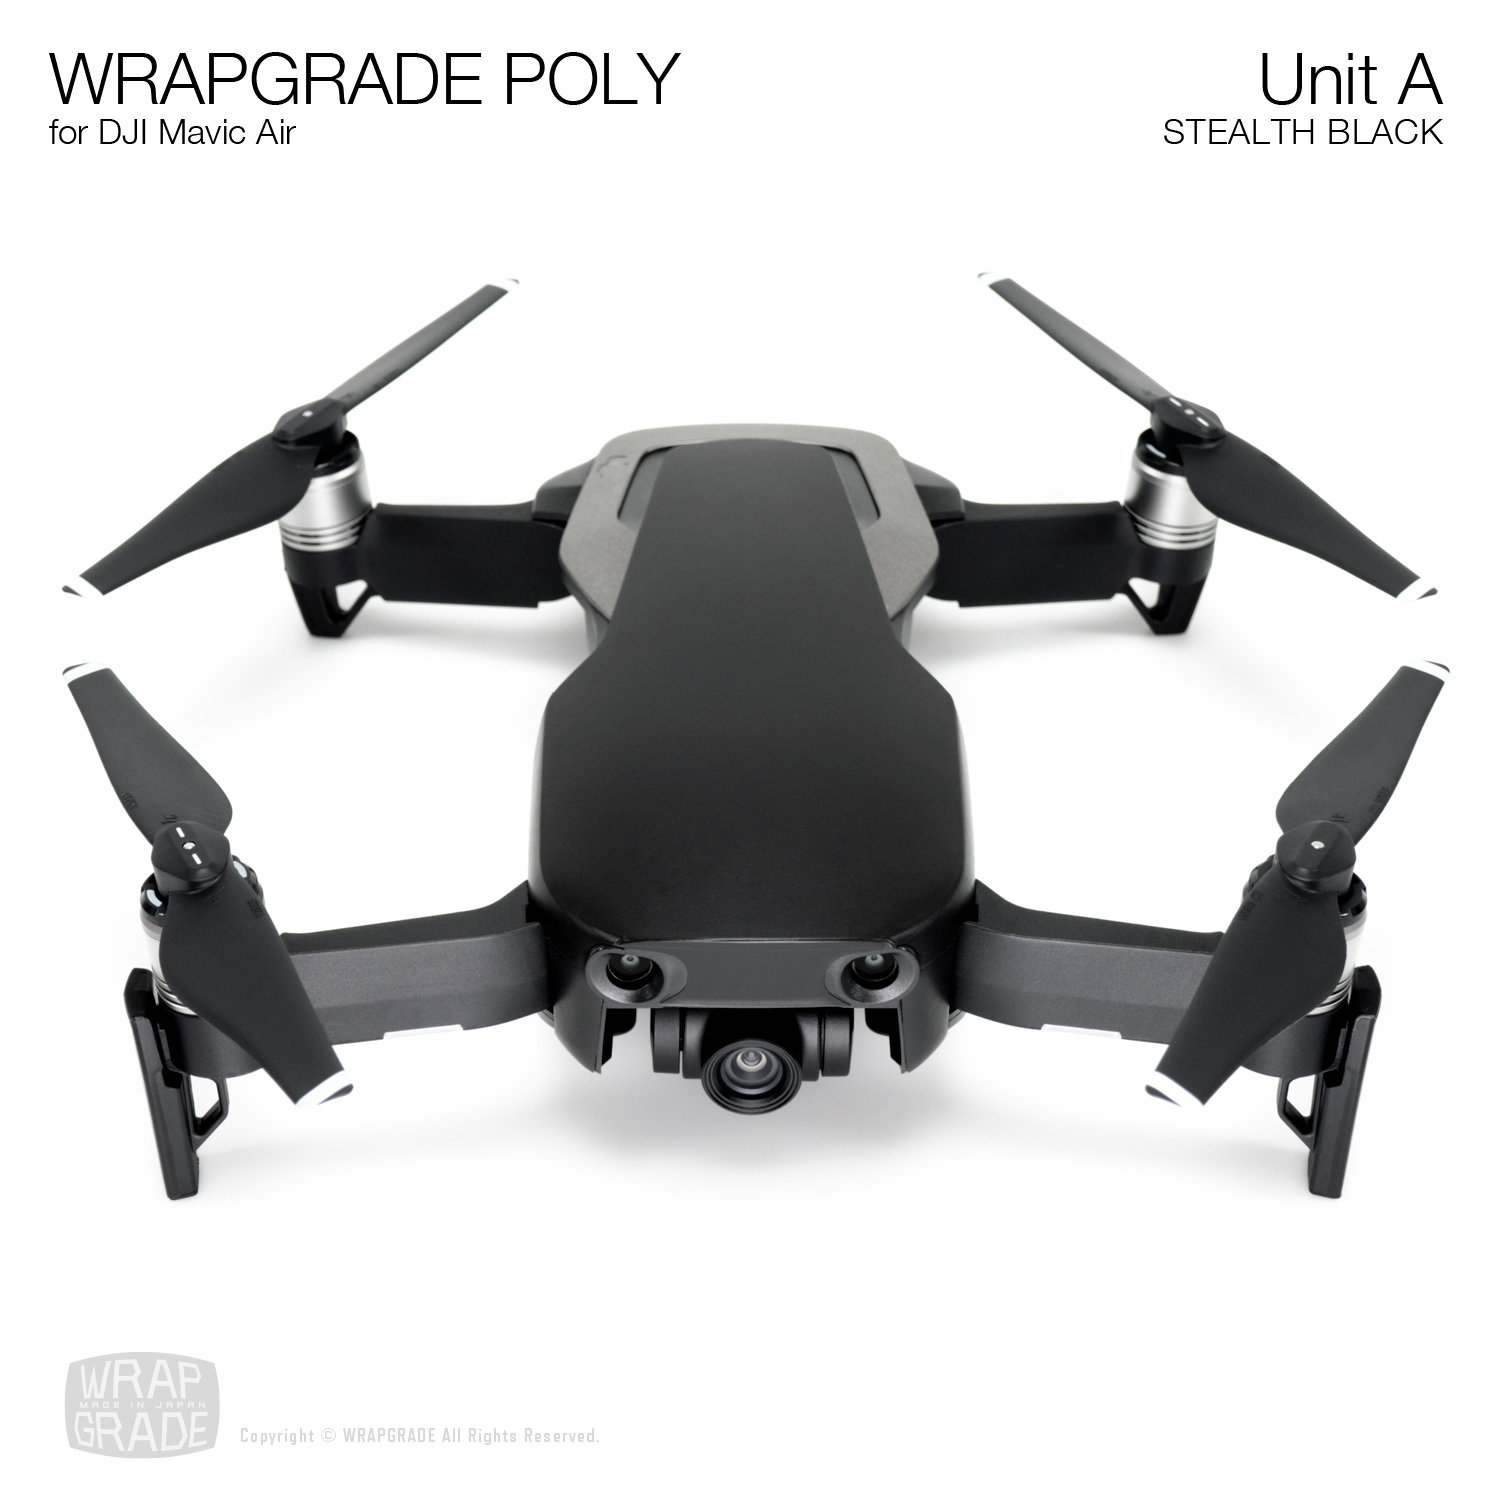 Wrapgrade Poly Skin for DJI Mavic Air | Unit A (STEALTH BLACK)